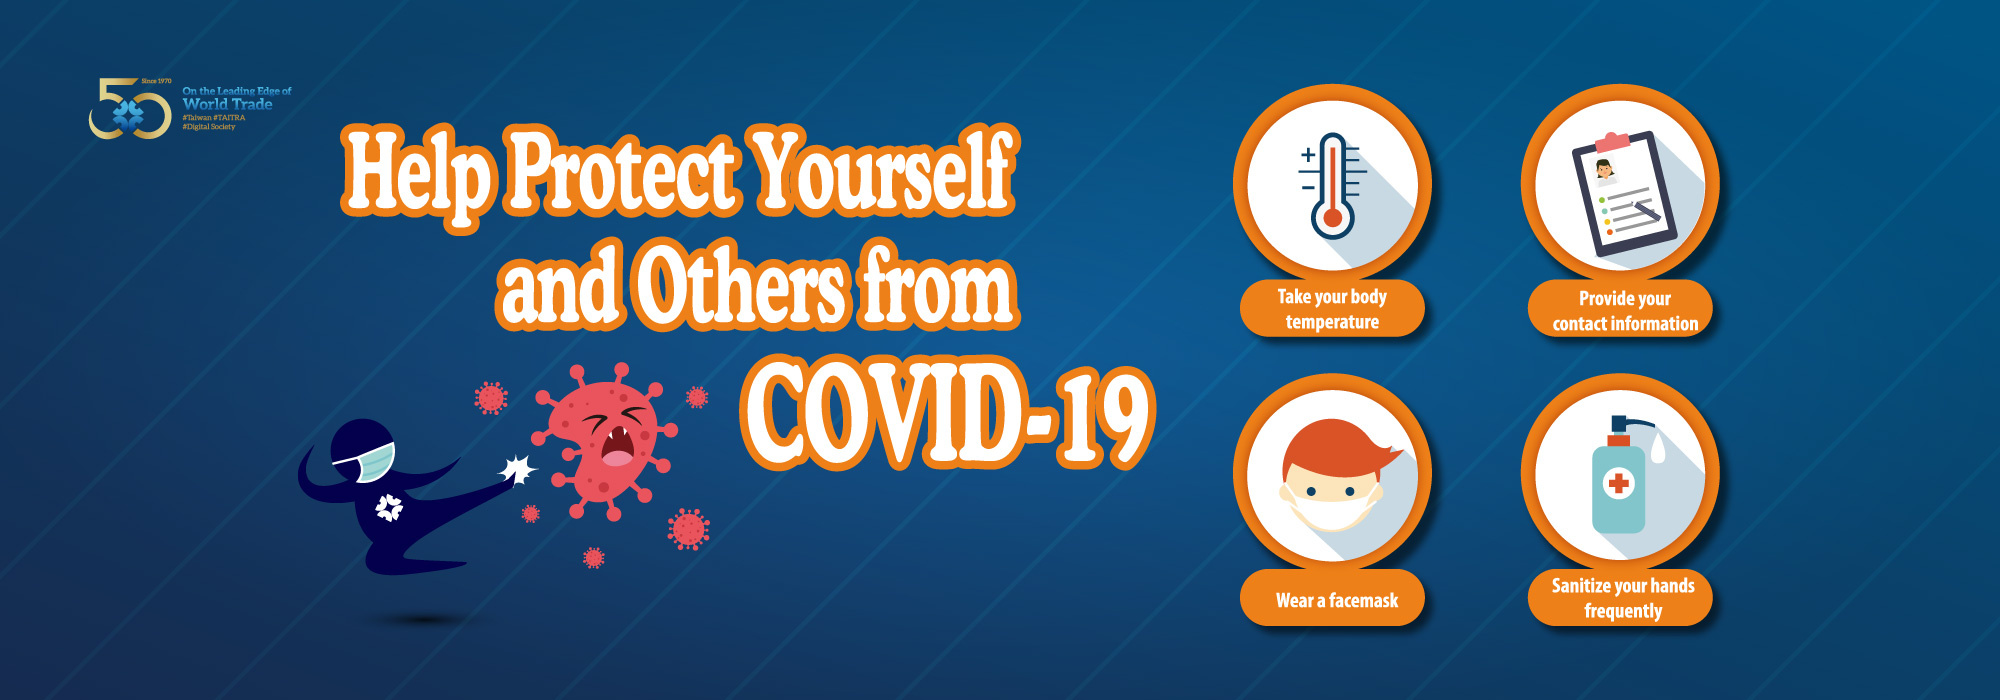 Help Protect Yourself and Others from COVID-19